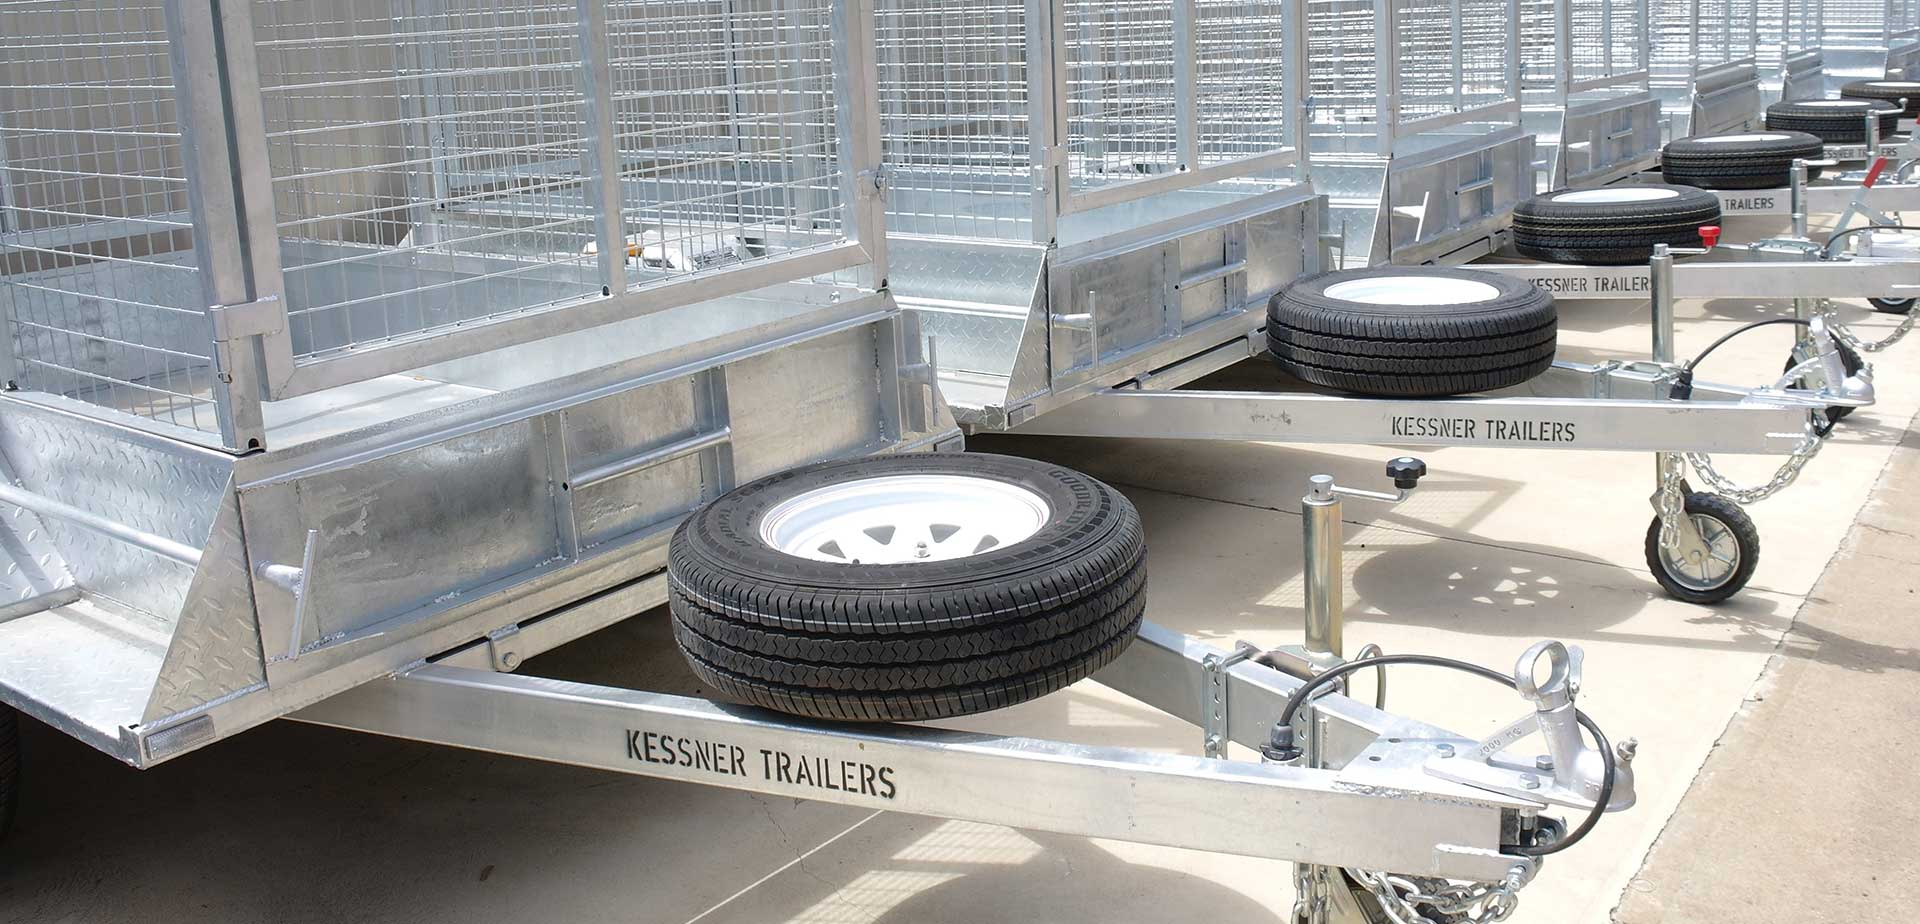 Trailer Registrations and Inspections